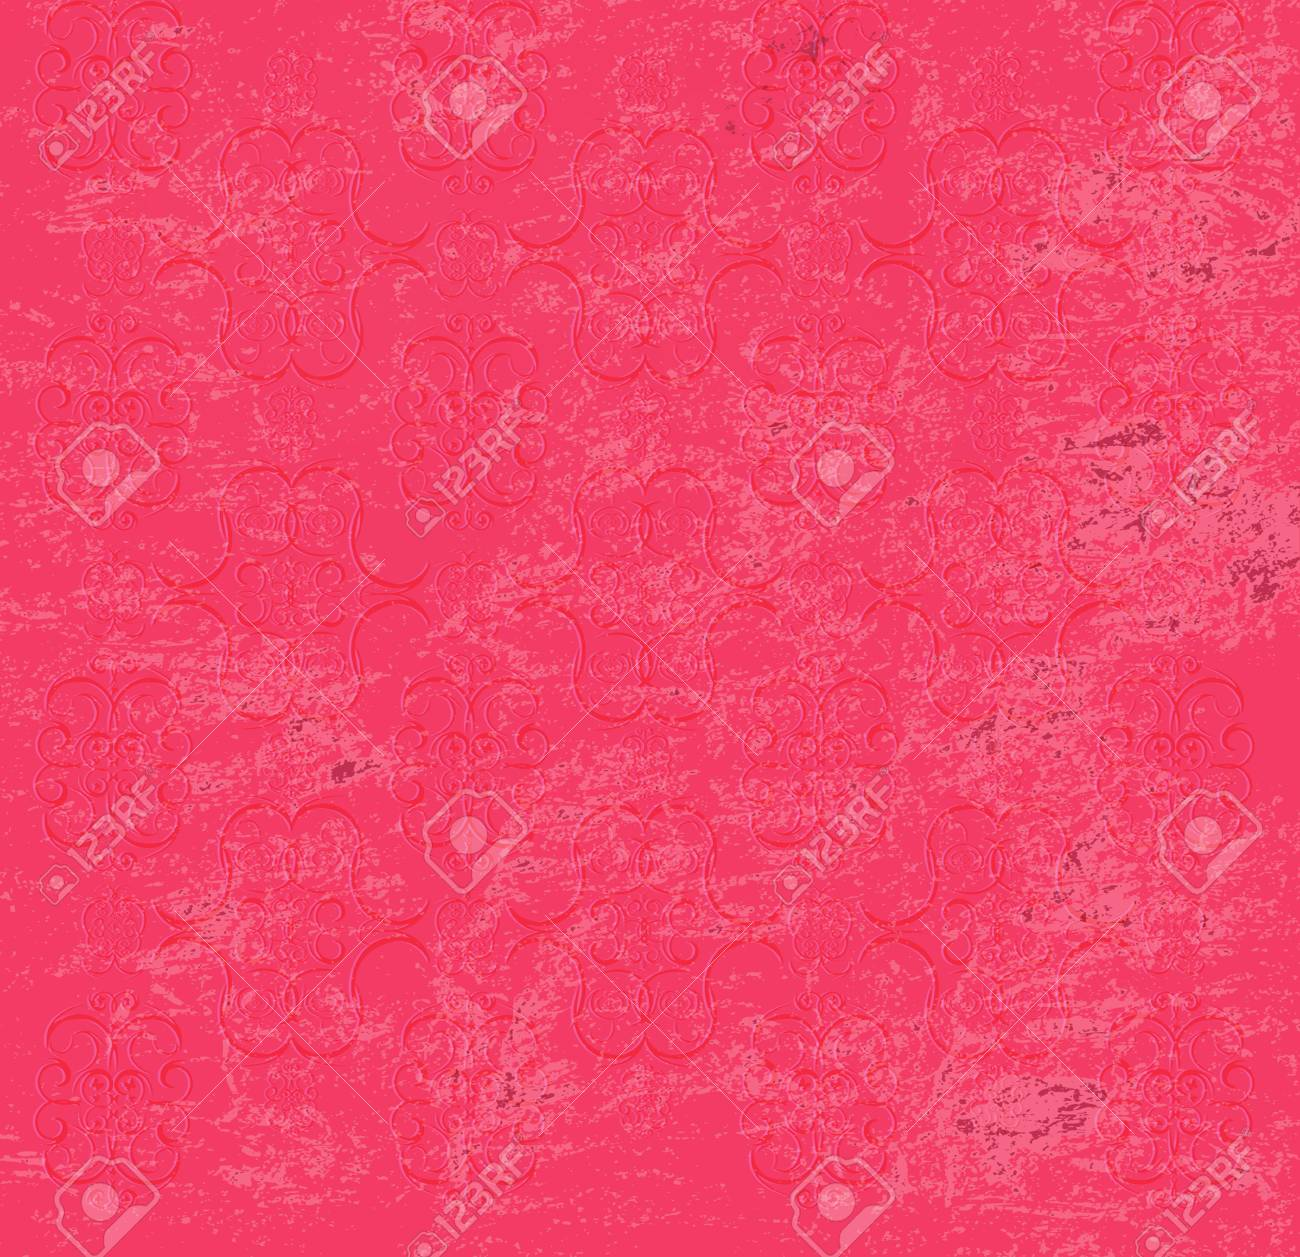 Abstract paper texture Vector background Stock Vector - 23487863